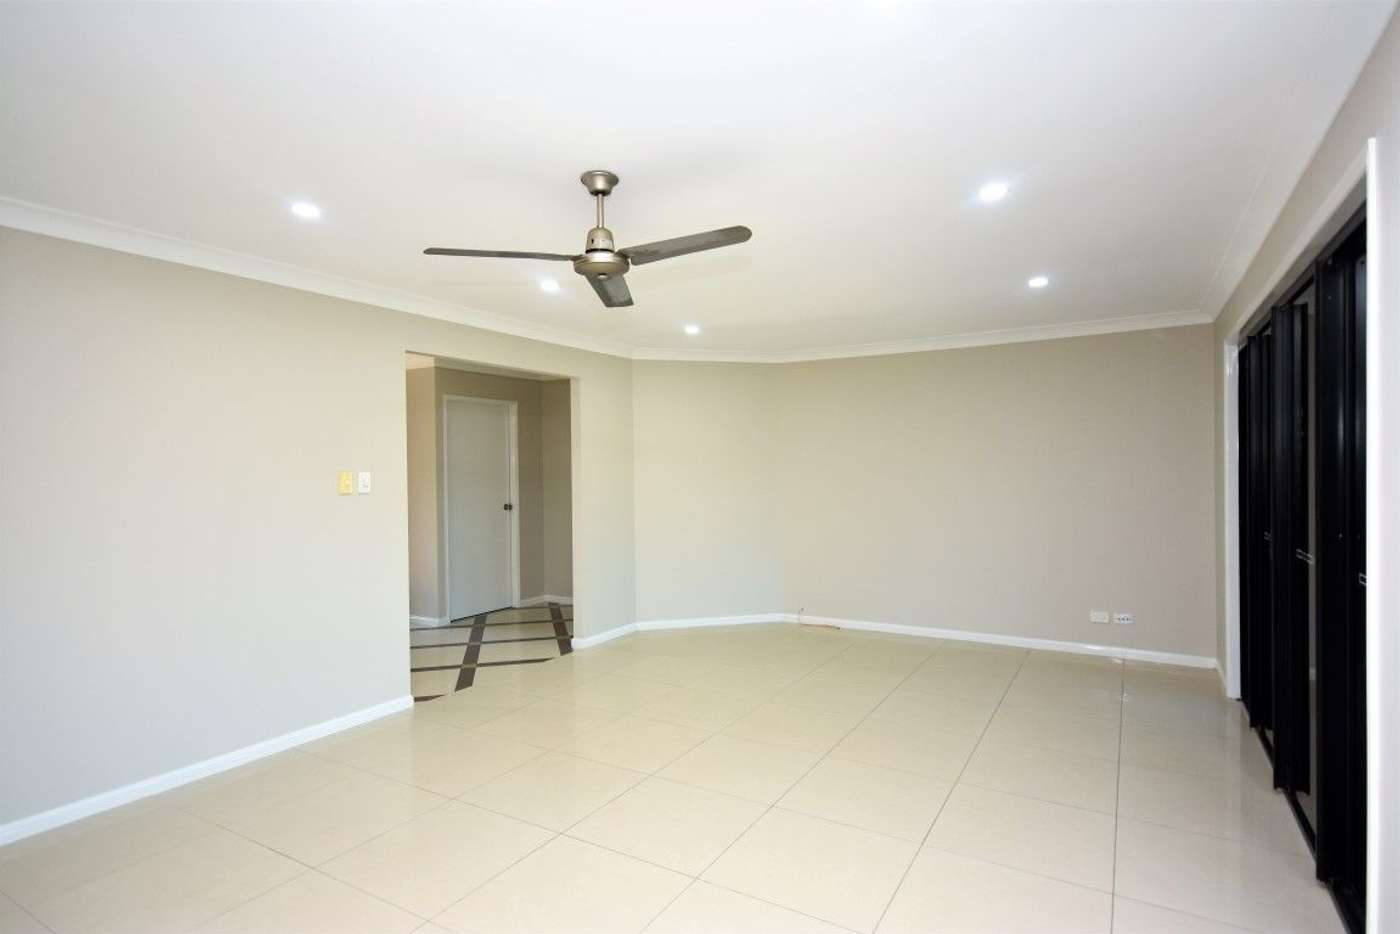 Sixth view of Homely house listing, 39 Kernel Road, Narangba QLD 4504